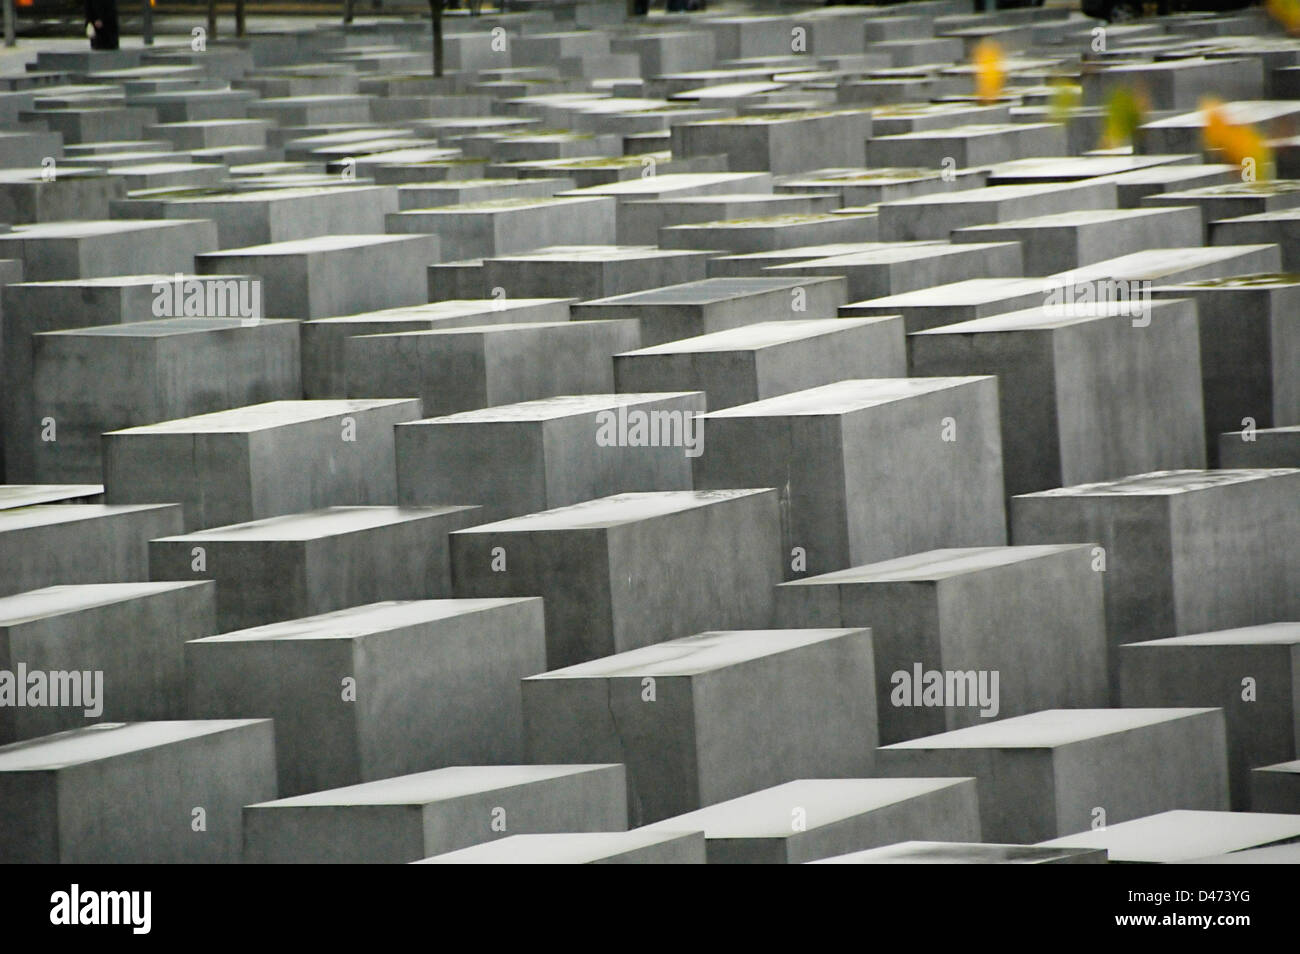 Berlin Holocaust memorial of stone slabs to Jews murdered during 2nd world war in Europe - Stock Image